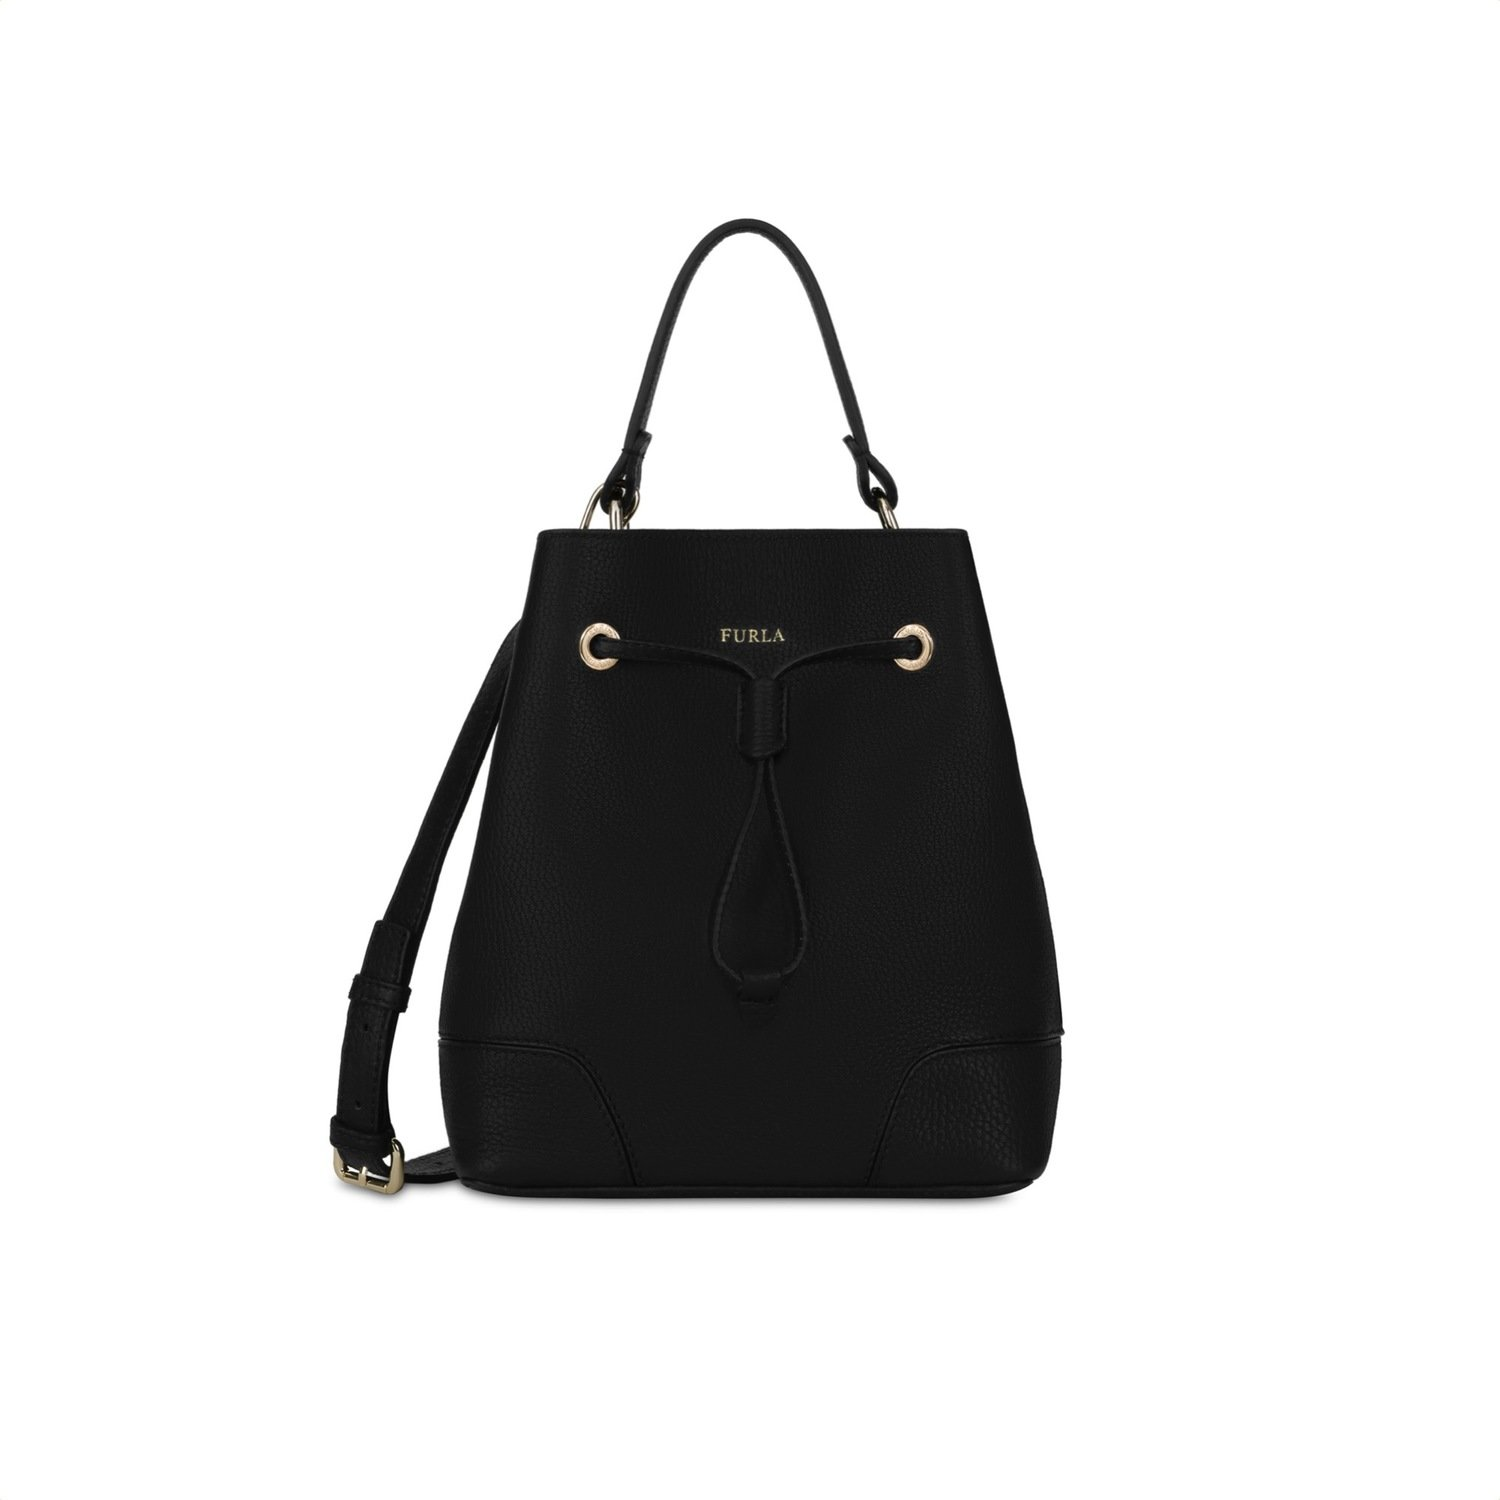 FURLA - Stacy Secchiello S - Onyx